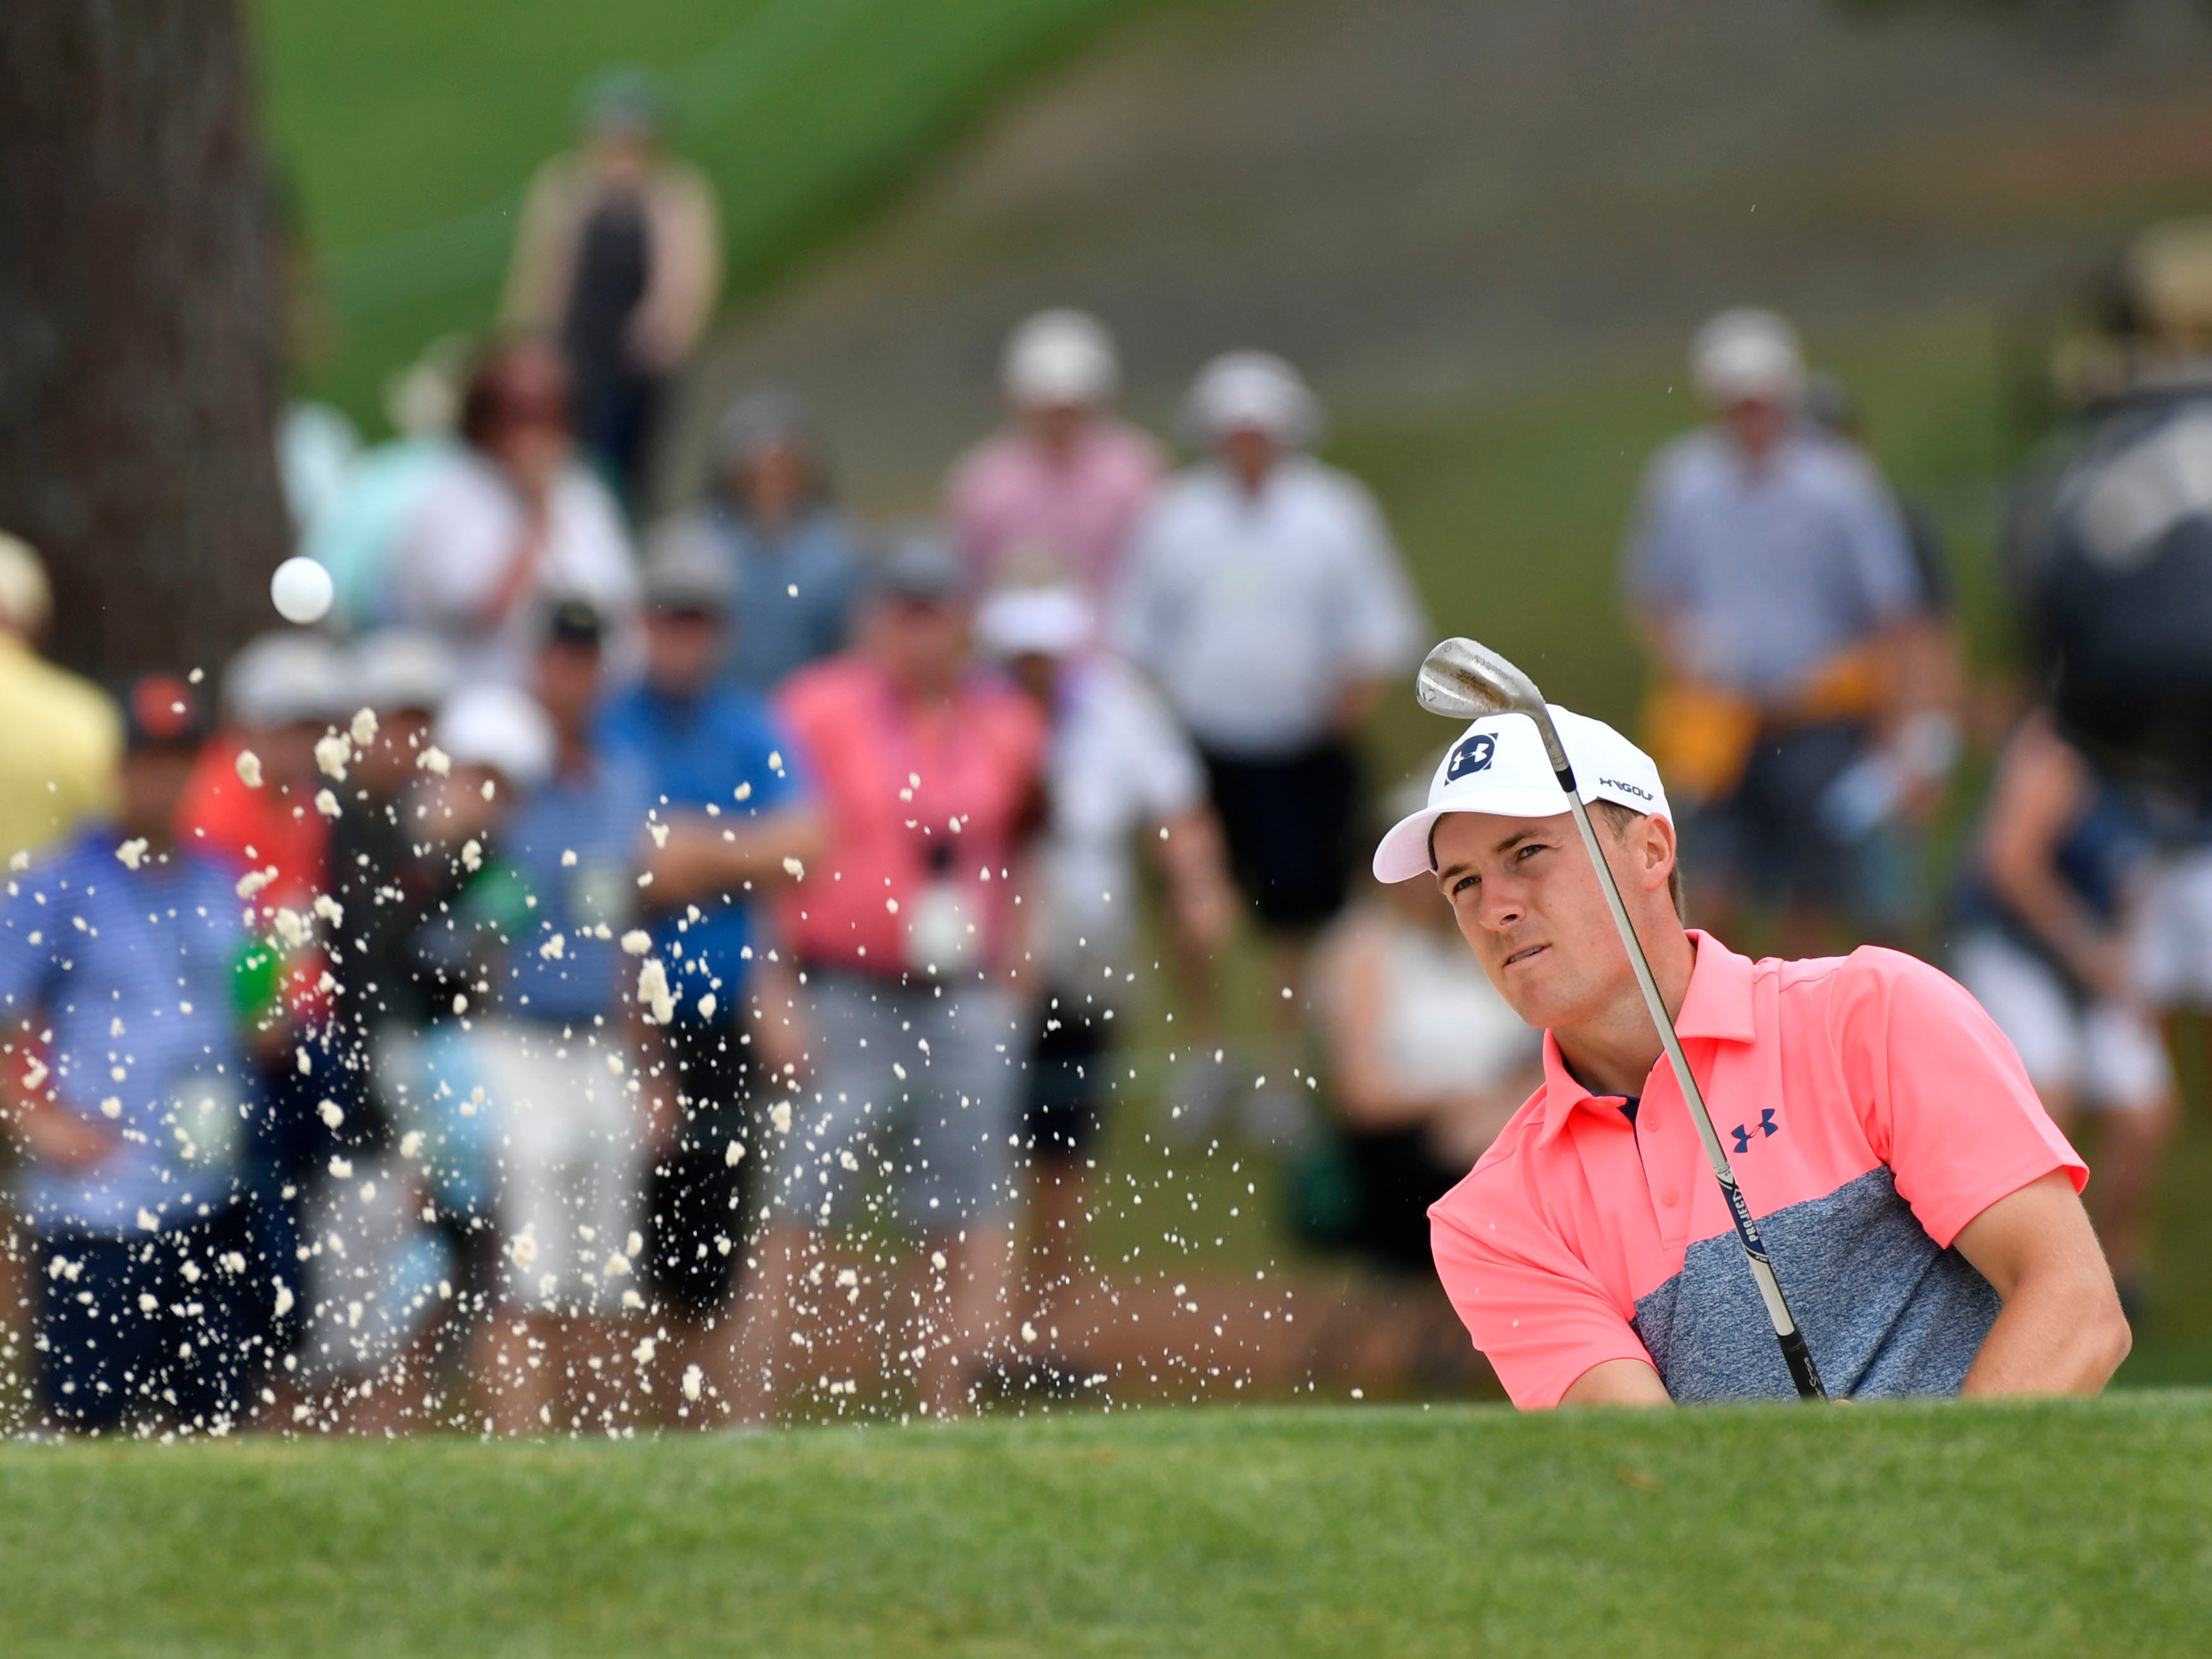 Jordan Spieth hits out of a bunker on the seventh hole during the second round of the Masters.